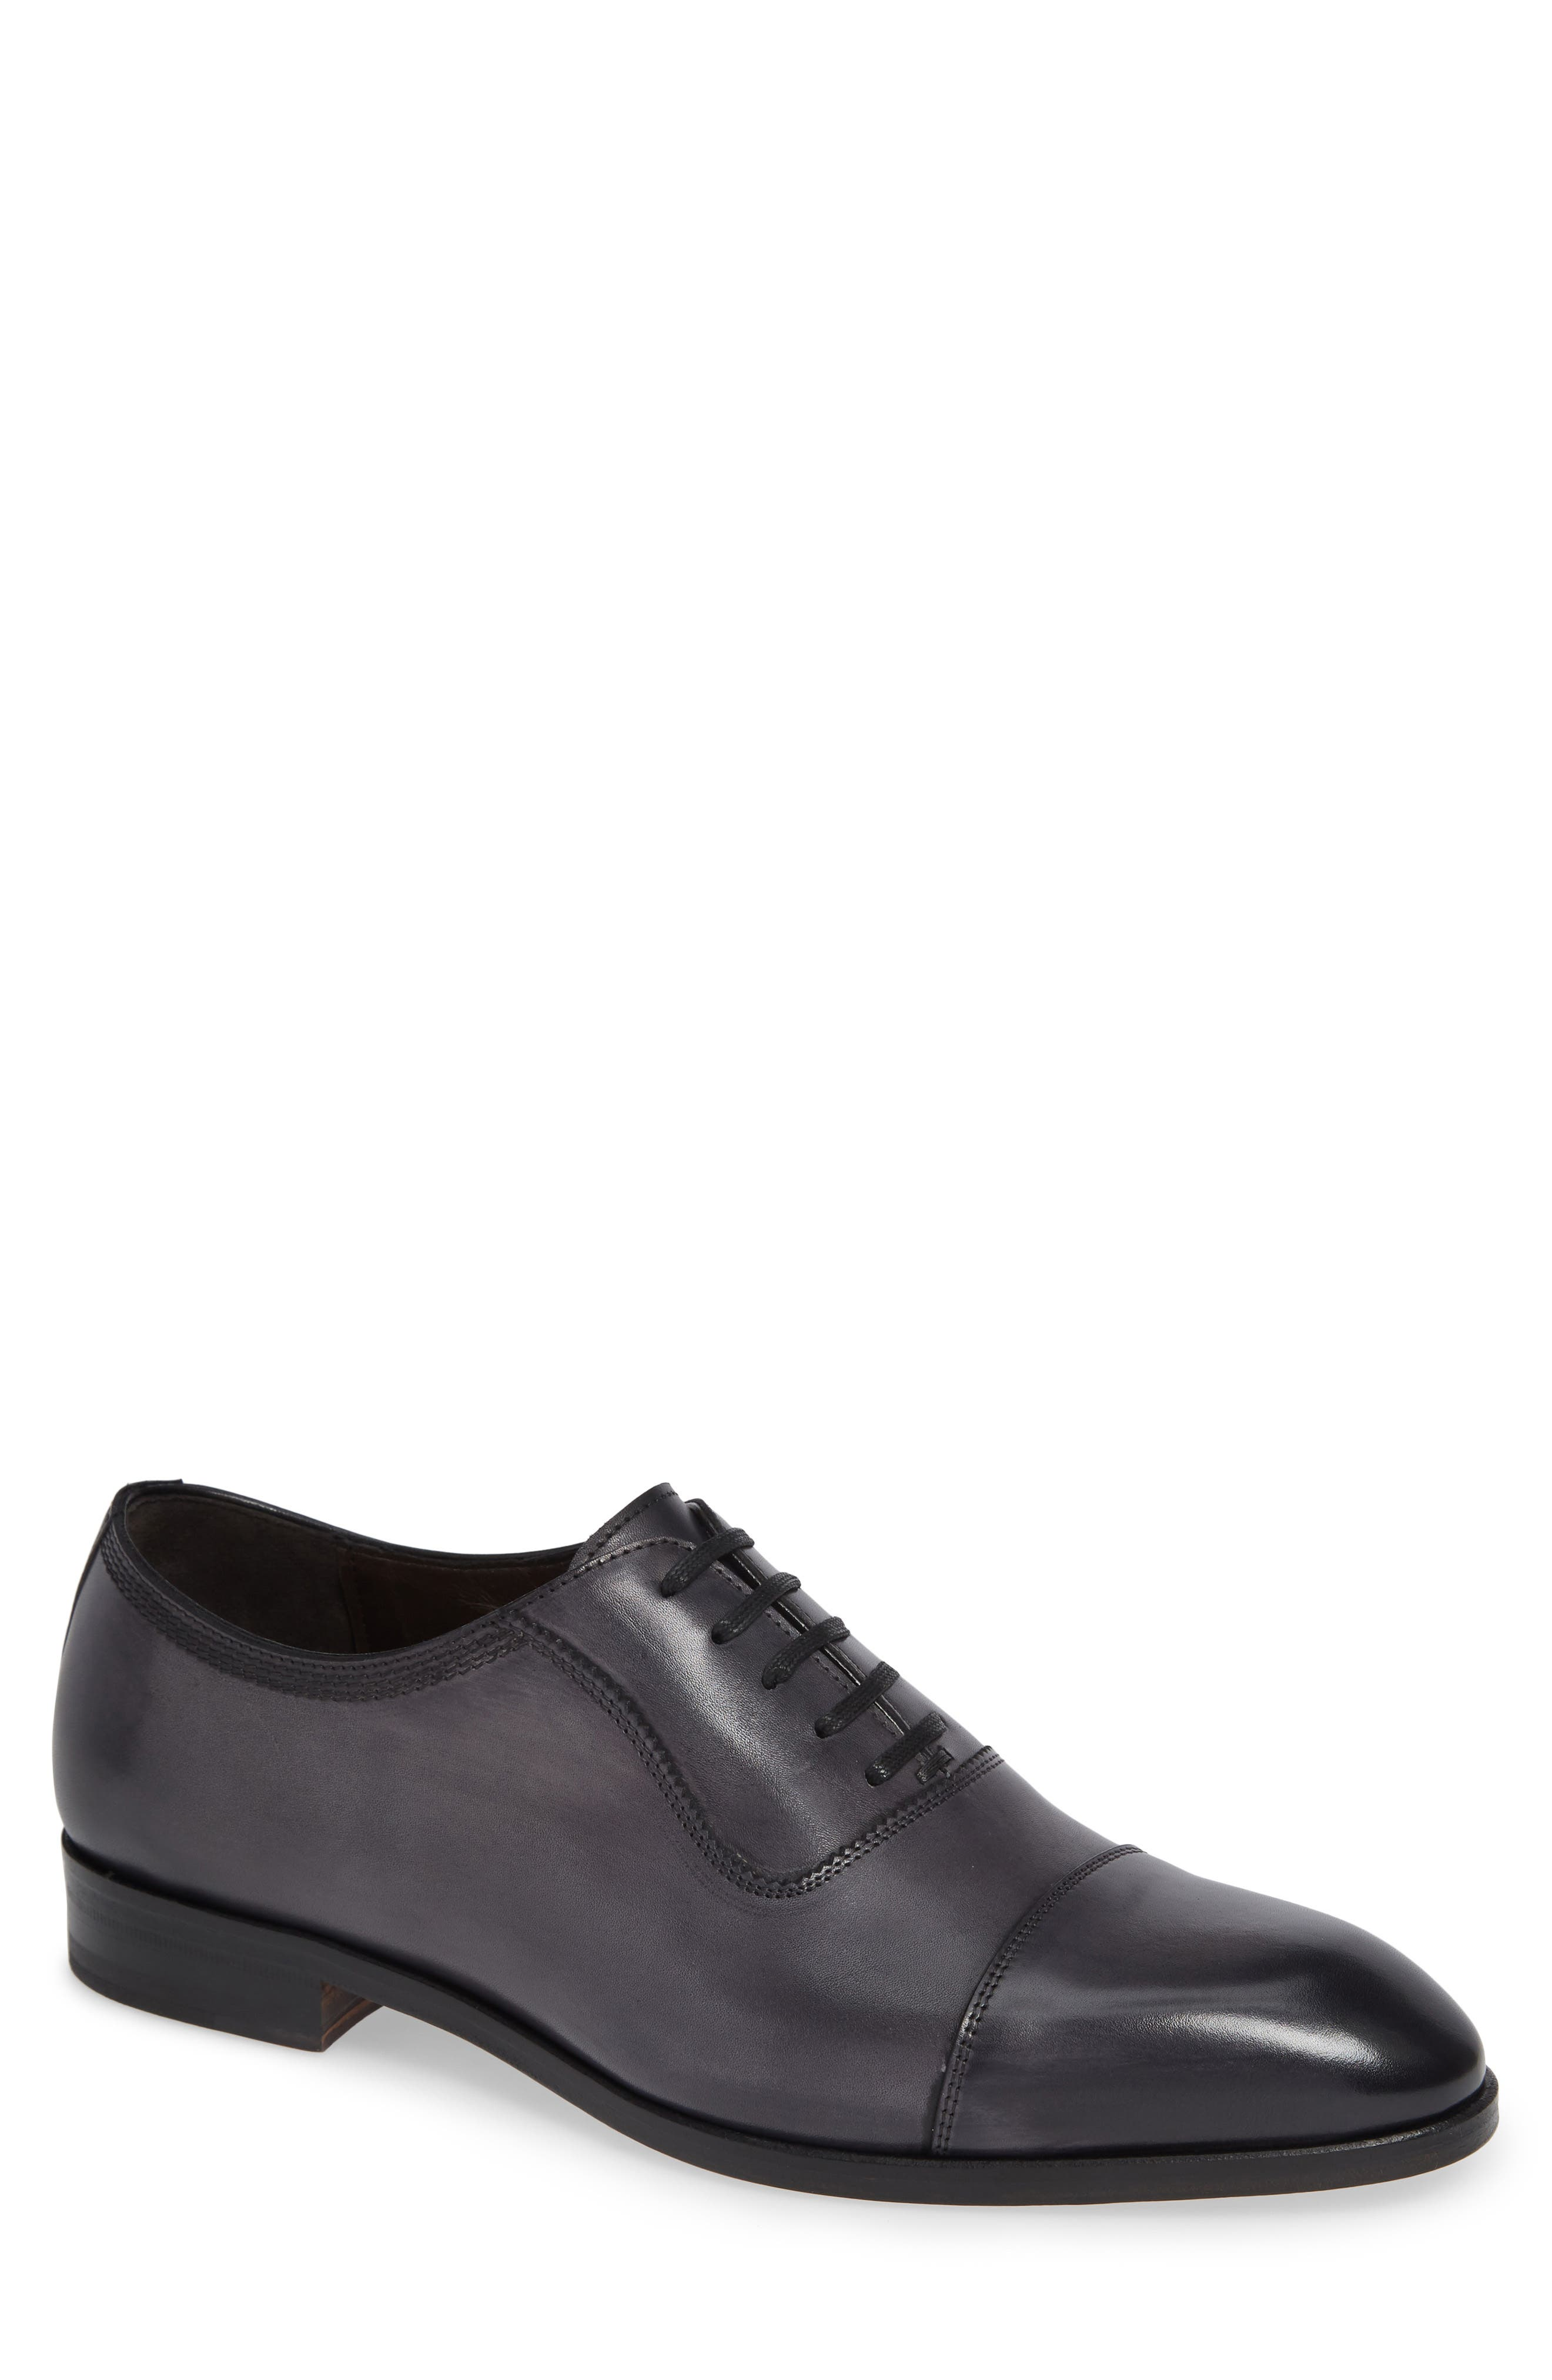 Lucerne Cap Toe Oxford,                             Main thumbnail 1, color,                             GREY LEATHER